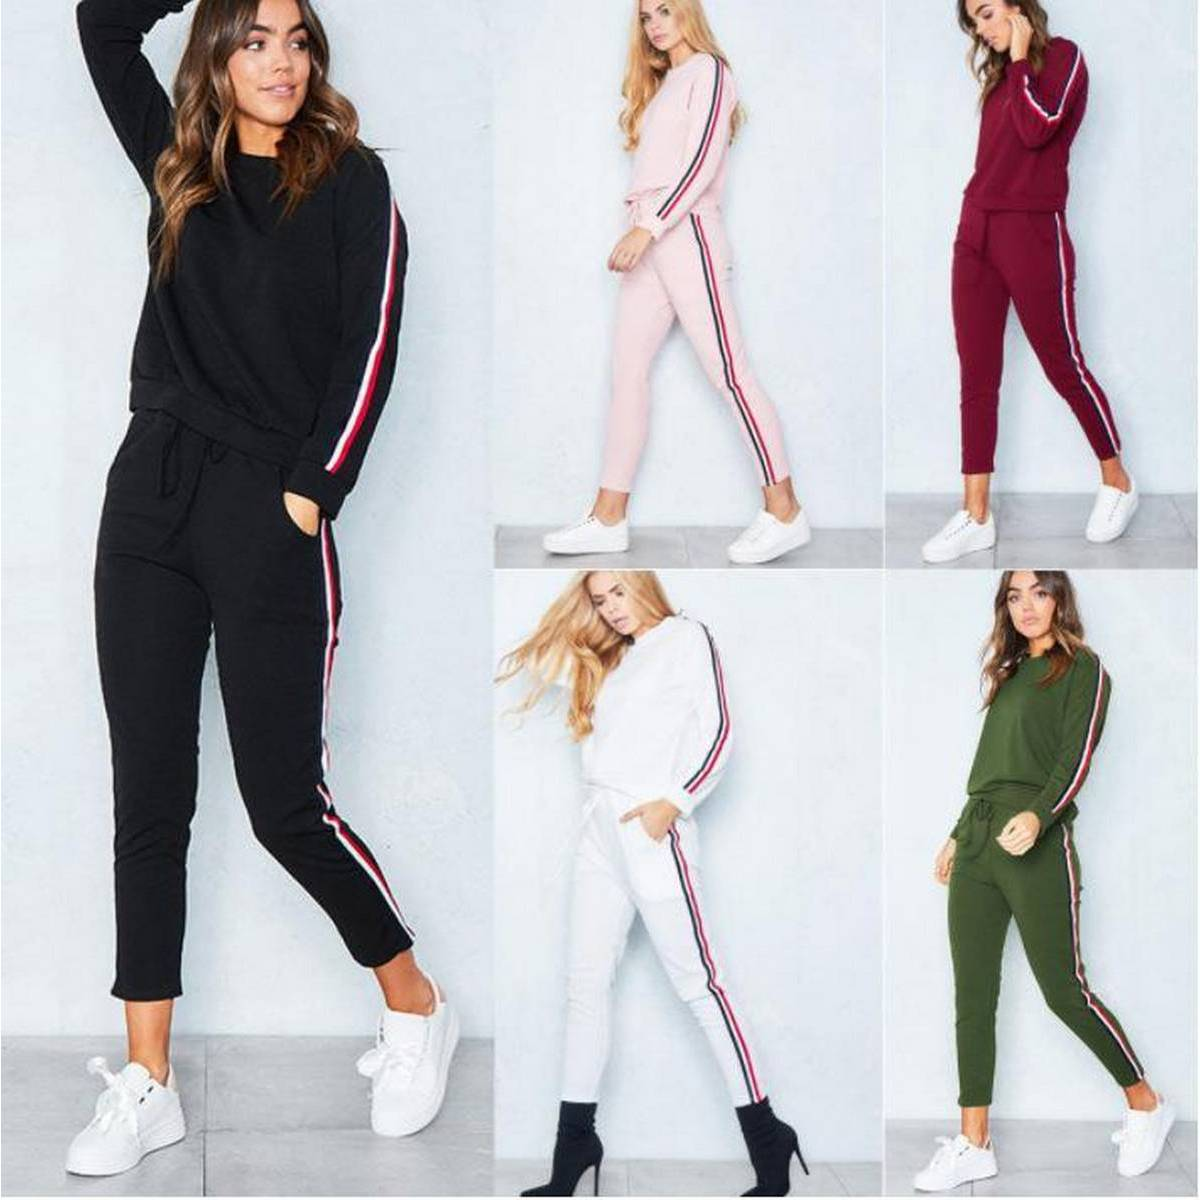 New fashion high quality women dress,jumpsuit,Top and pants,striped tracksuit,Female Autumn Track Suit Tops Females Ankle-Length Pants Women's Casual Sweatshirt(Special tik tok dress))